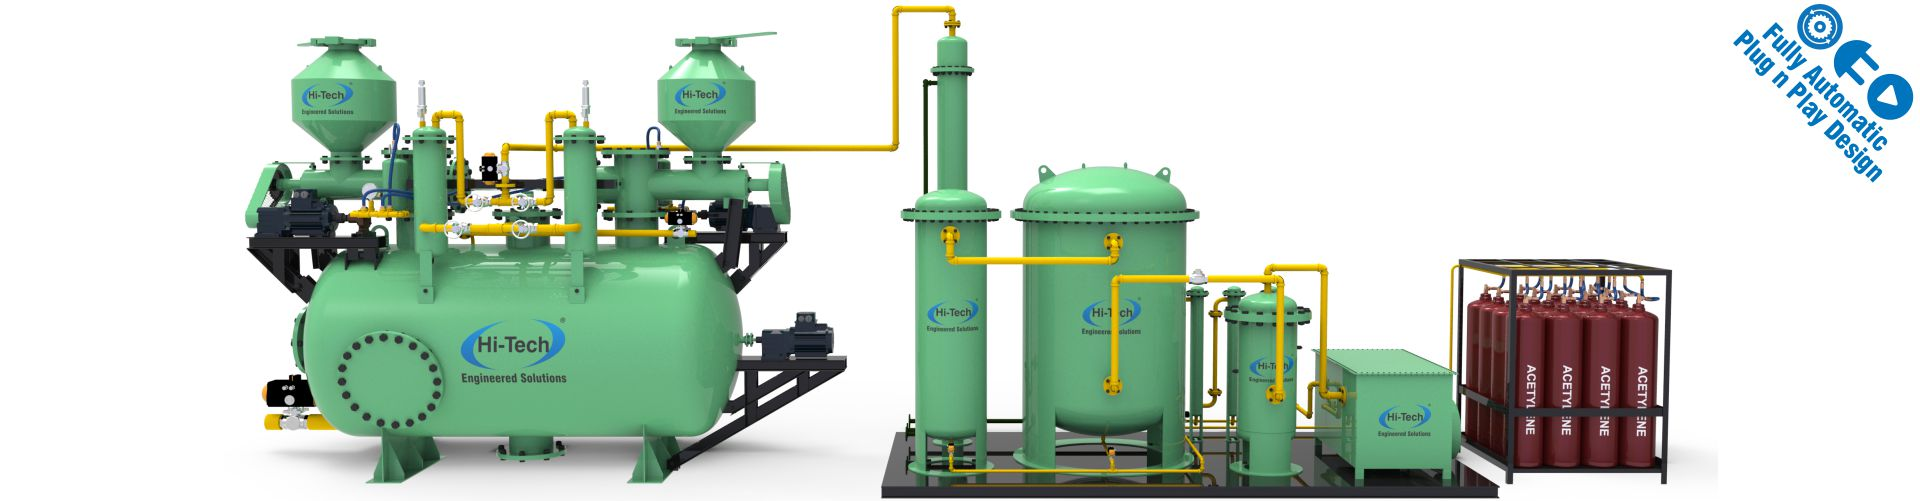 acetylene plant for continuous process applications